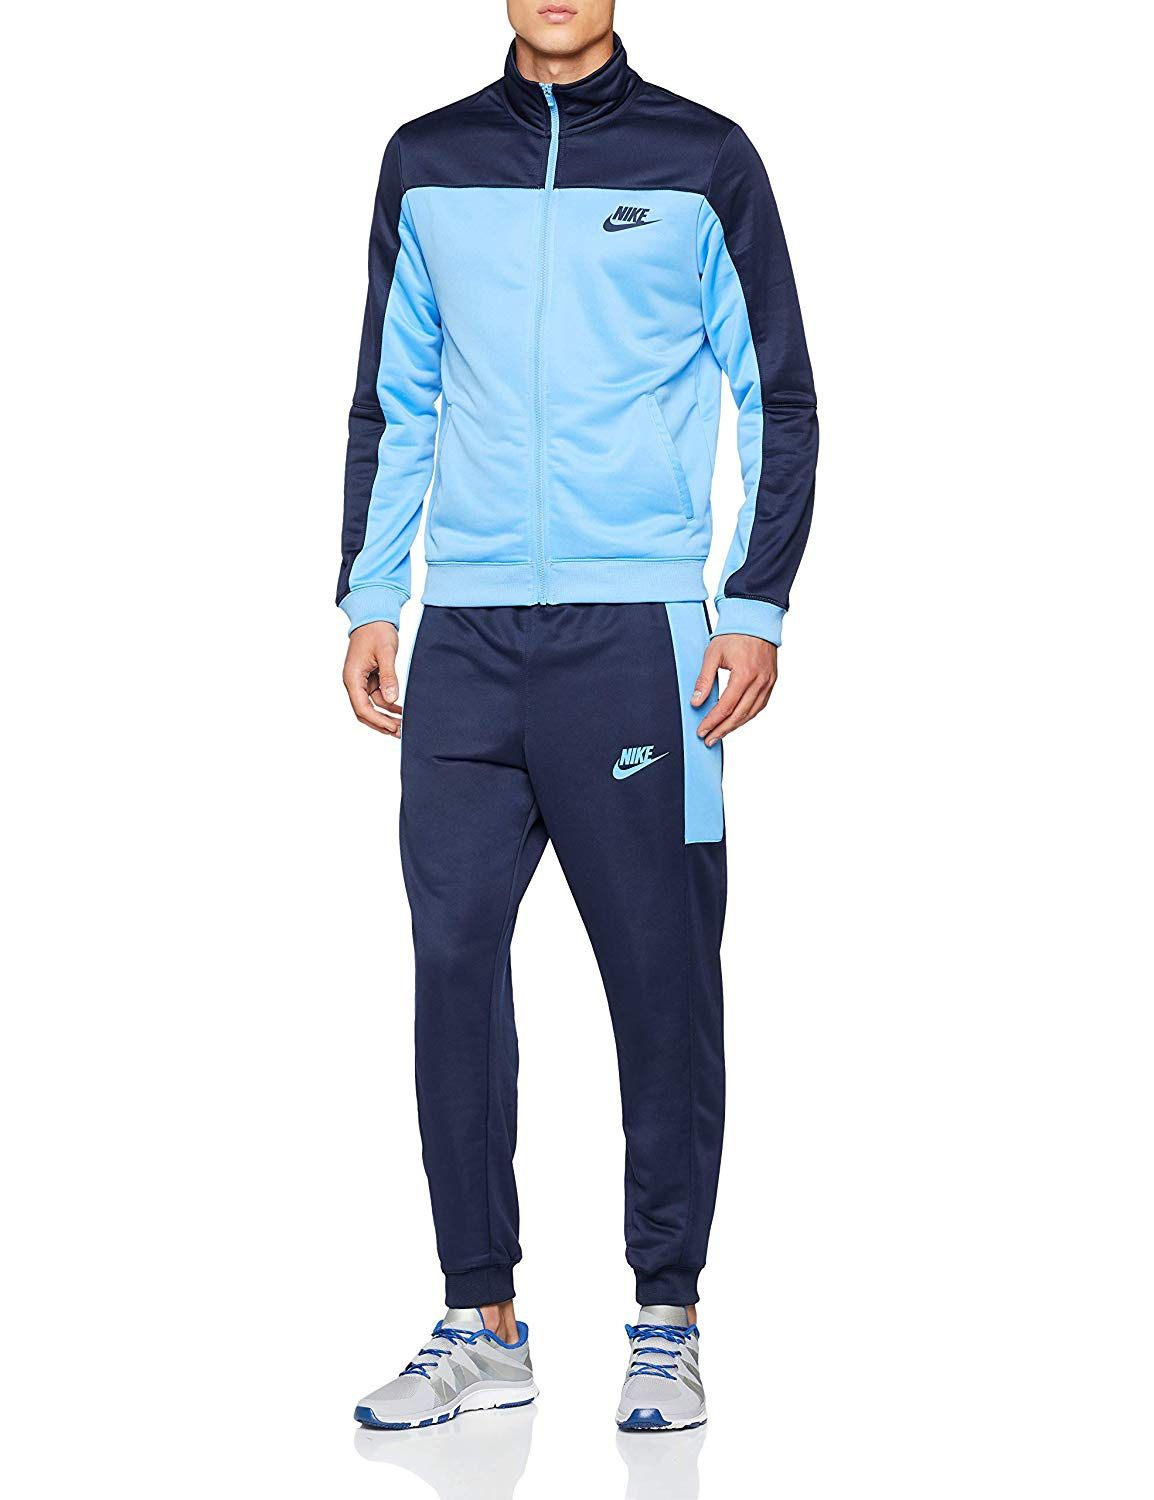 huge discount e1742 0822f Nike Herren M Nsw Trk Suit Pk Trainingsanzug, Grau ...